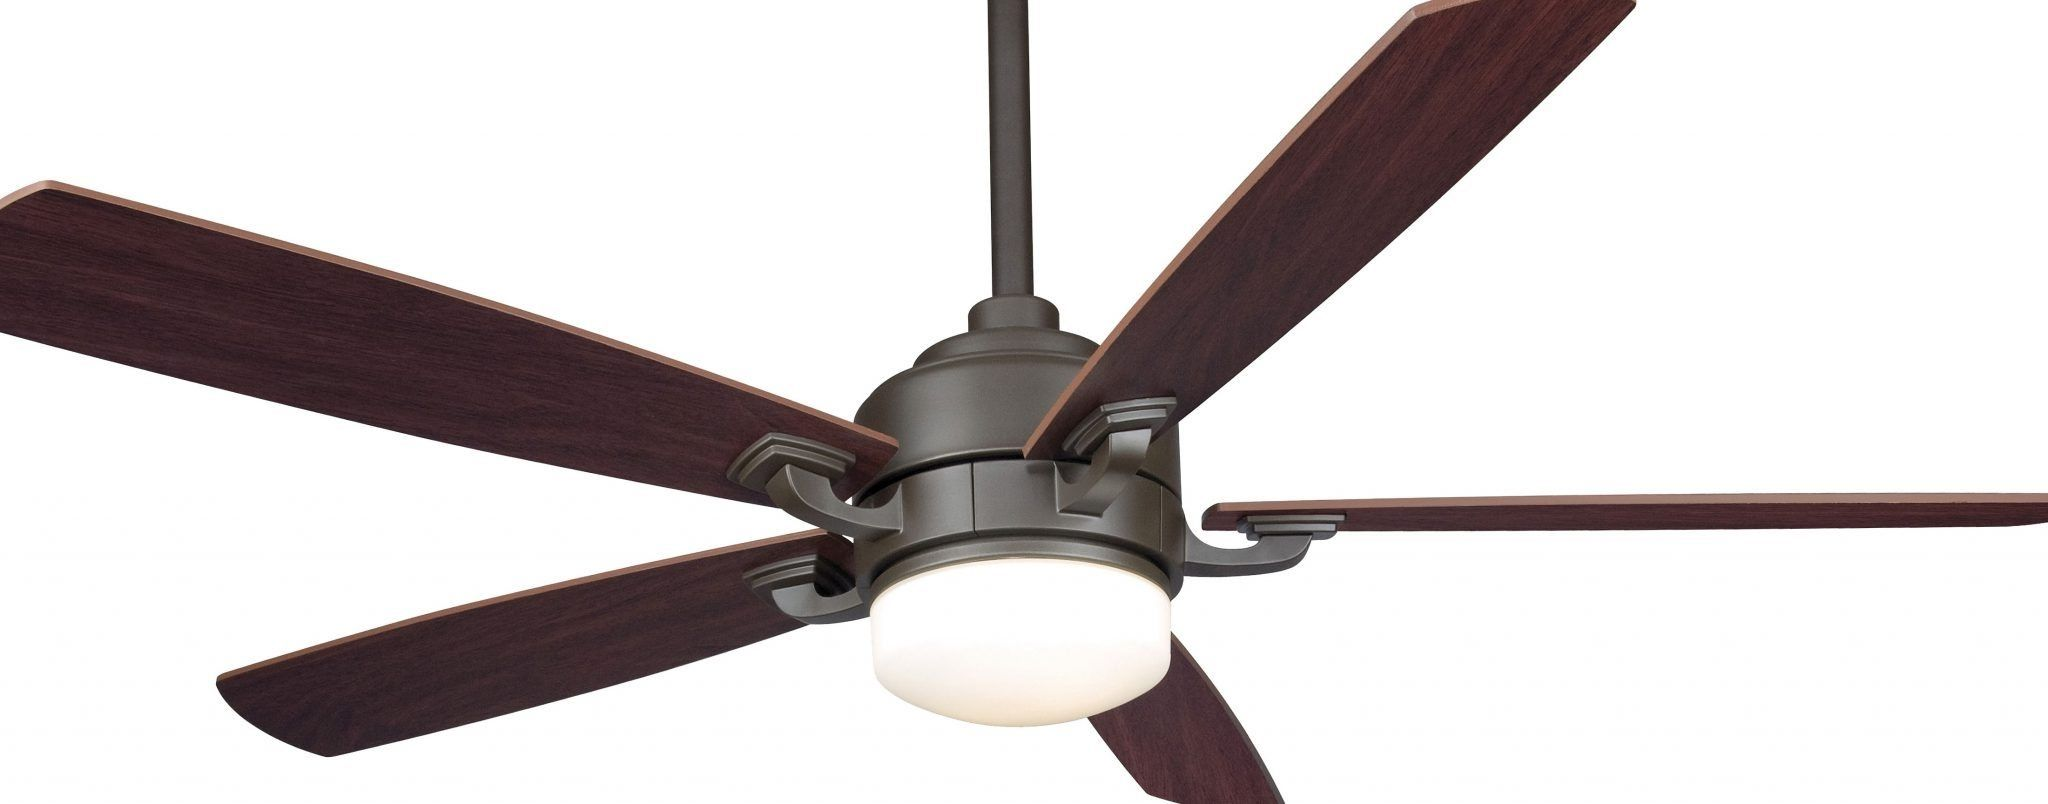 Hunter douglas fan remote httponlinecompliancefo pinterest hunter douglas fan remote hunter fan continues to be in the business of producing quality made ceiling fan the first hunter fan units are powered by wat aloadofball Choice Image